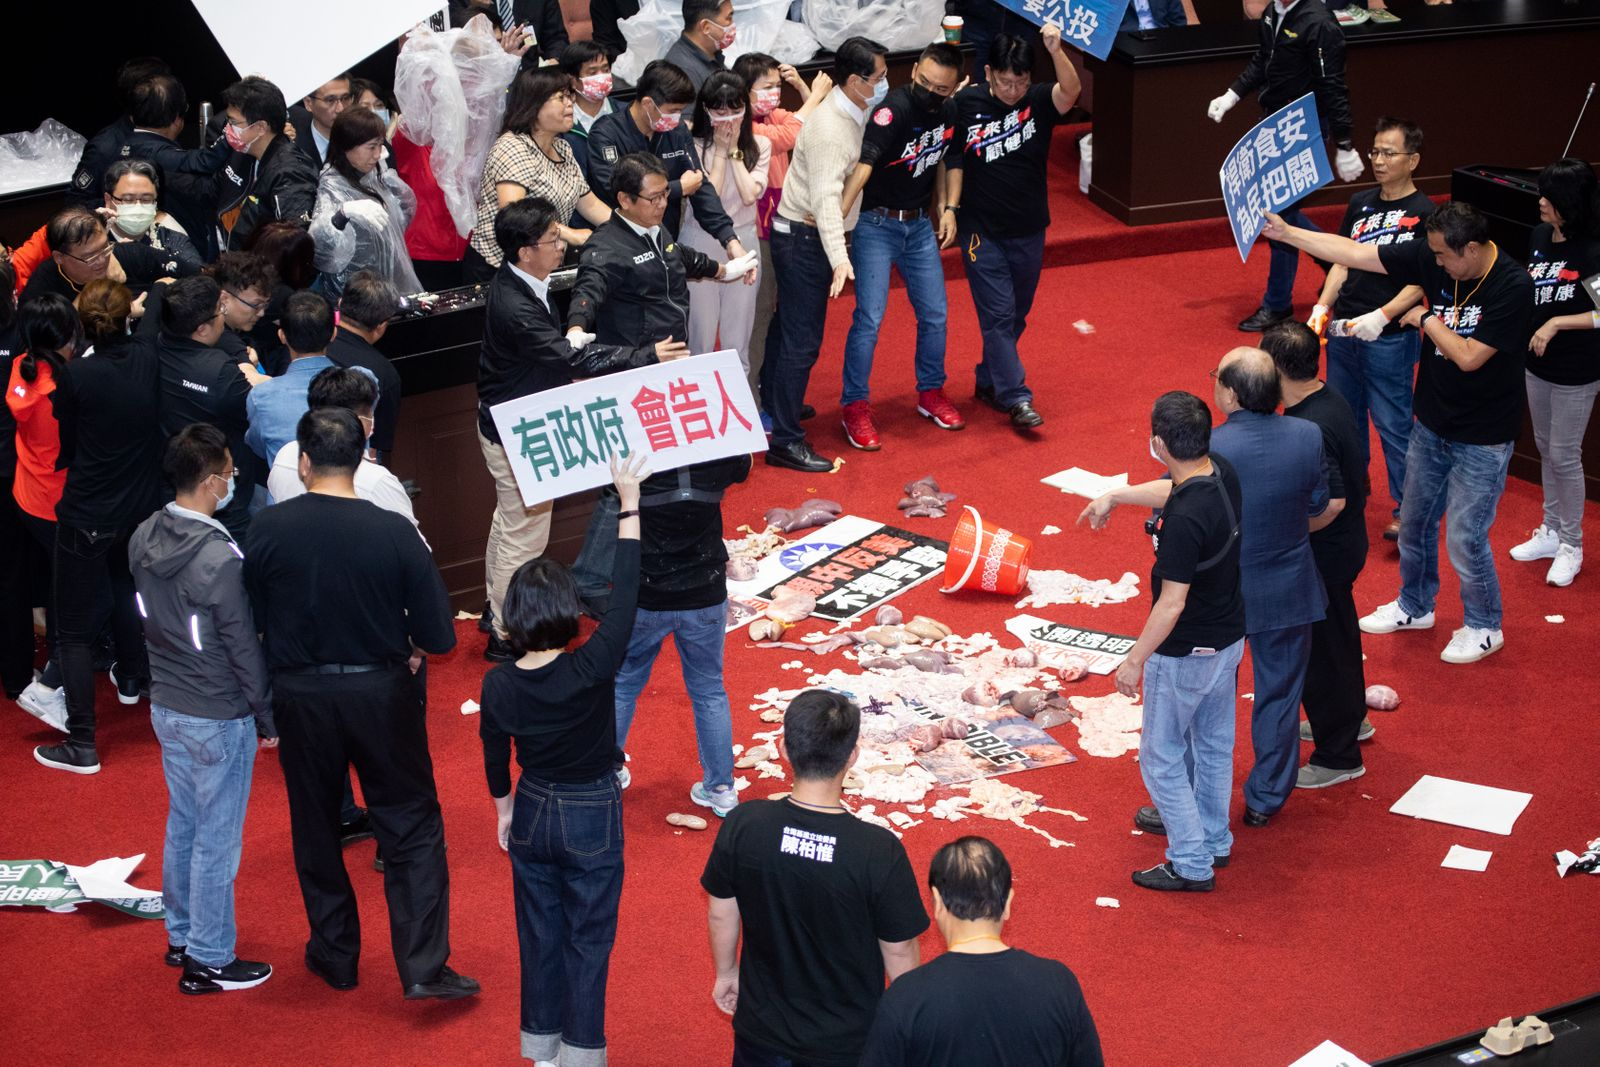 Protest Break Out In Taiwan Parliament Against U.S. Pork Imports - KMT Throws Pig Offal On The Podium